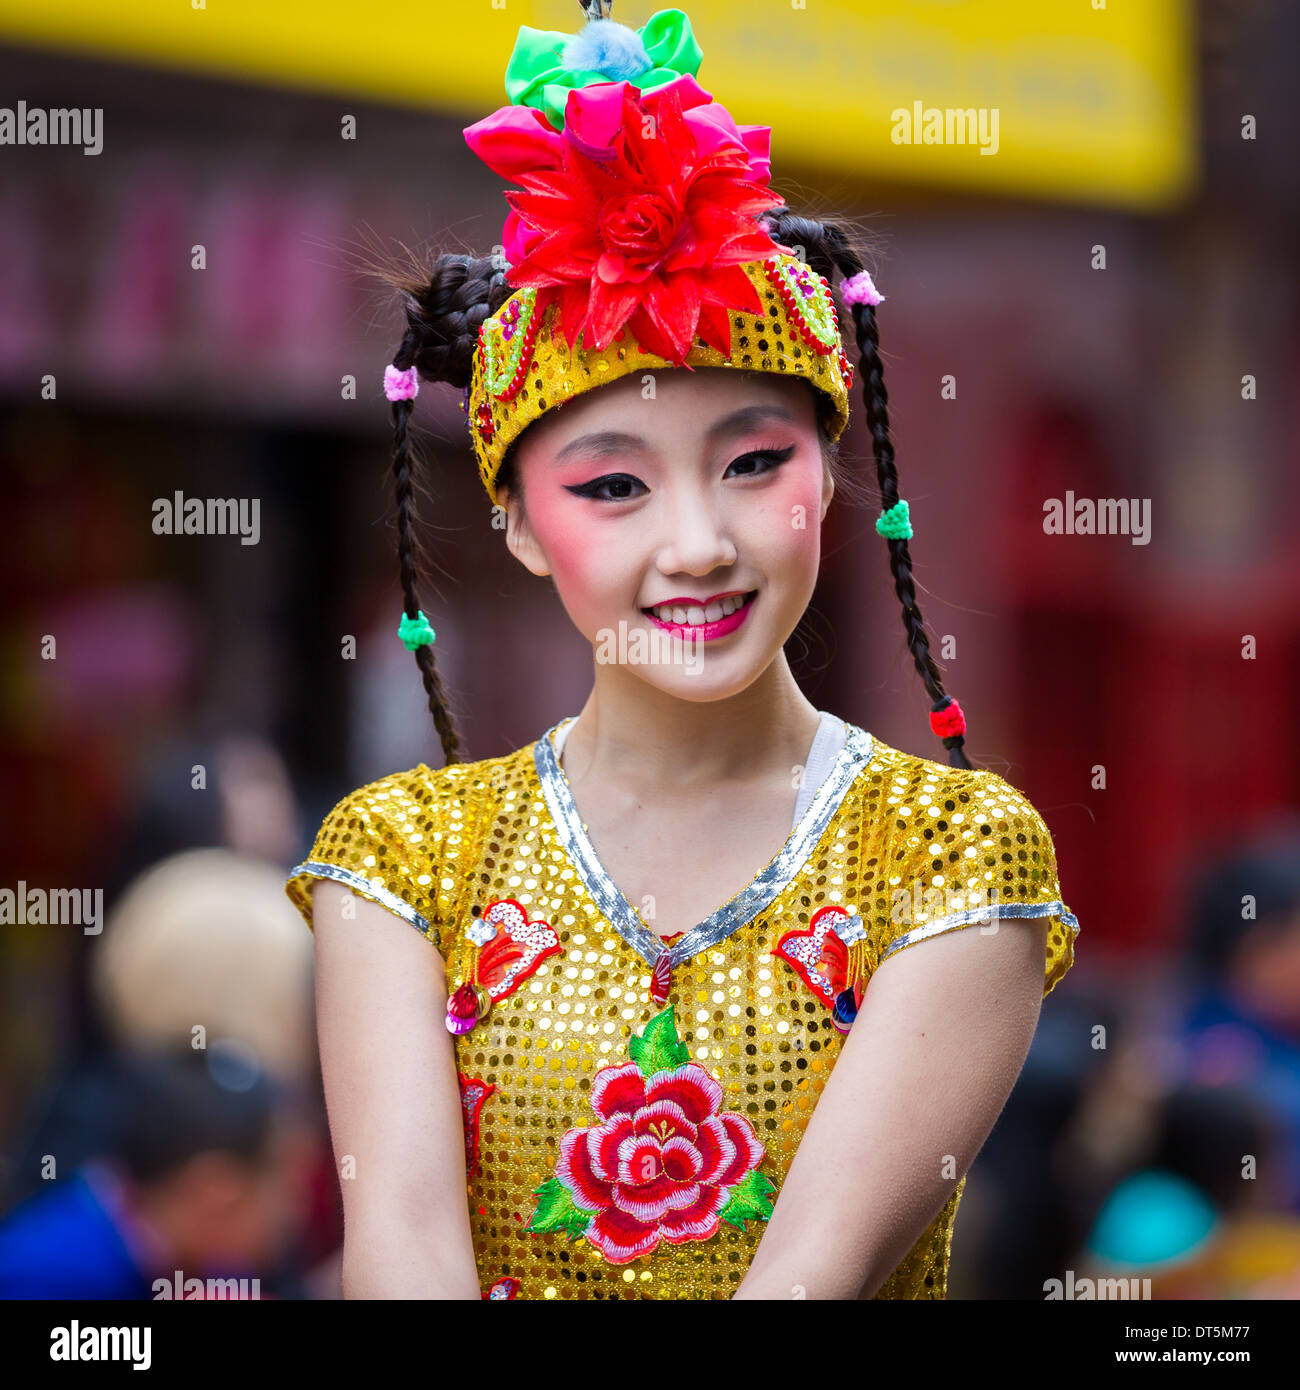 Beautiful Chinese girl parades at the Lunar New Year Festival in Chinato - Stock Image